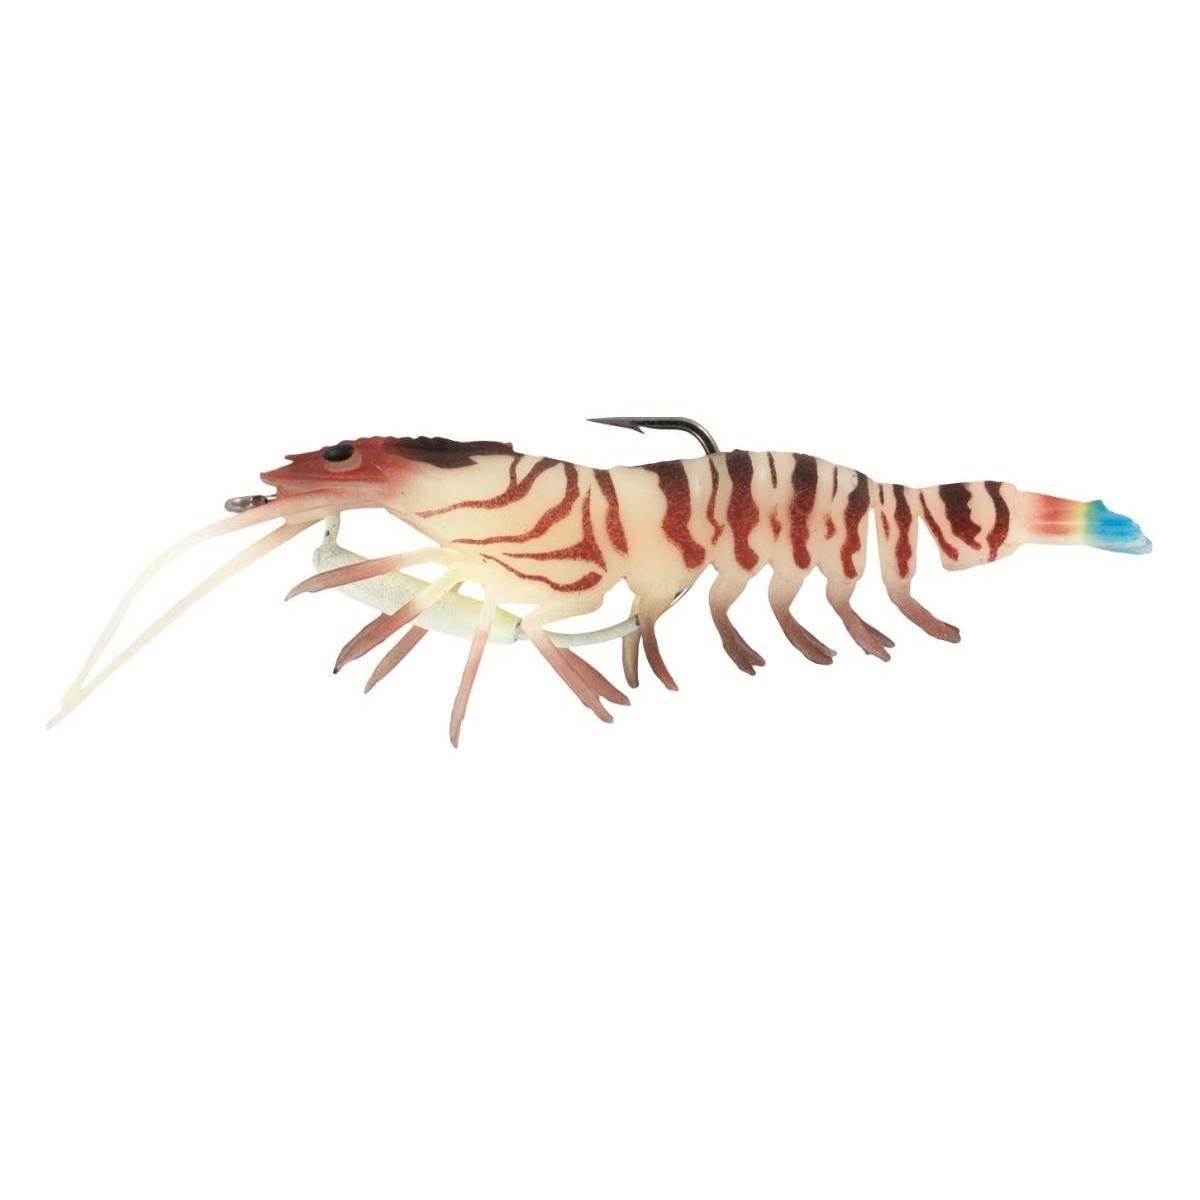 Chasebaits Flick Prawn; This is part of the Soft Plastics collection offered from Fishin' My Best Life - fishinmybestlife.com